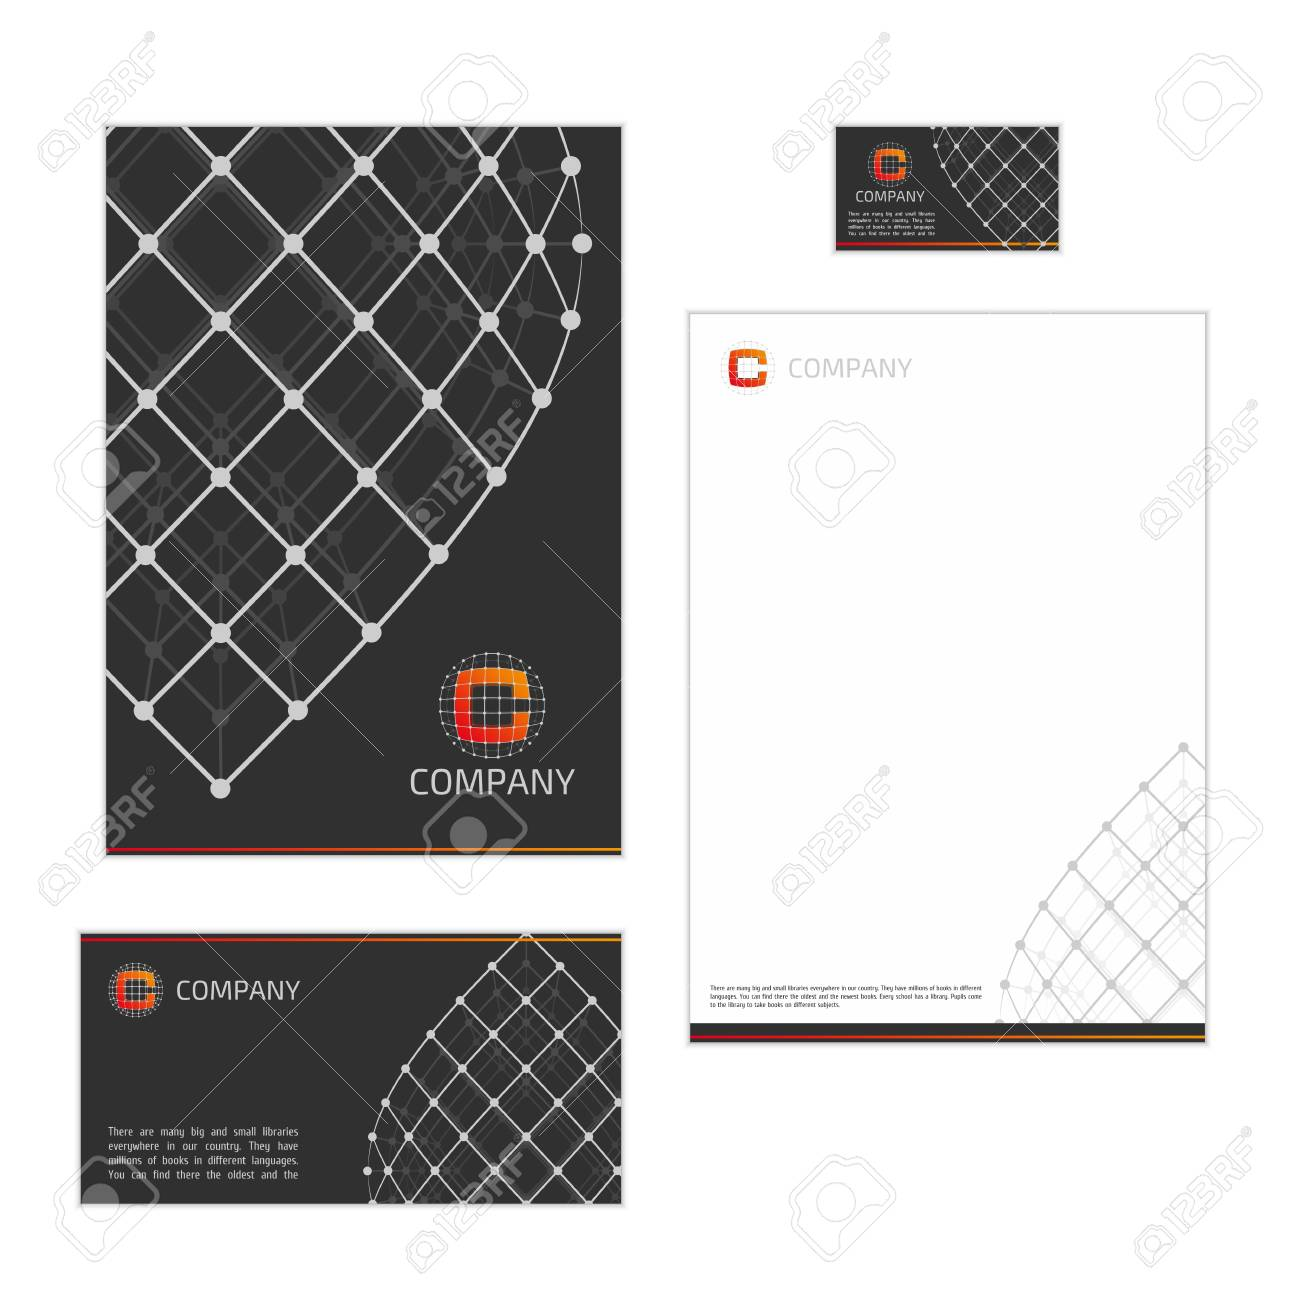 Corporate identity template with digital elements modern design corporate identity template with digital elements modern design elements of corporate identity the folder spiritdancerdesigns Choice Image